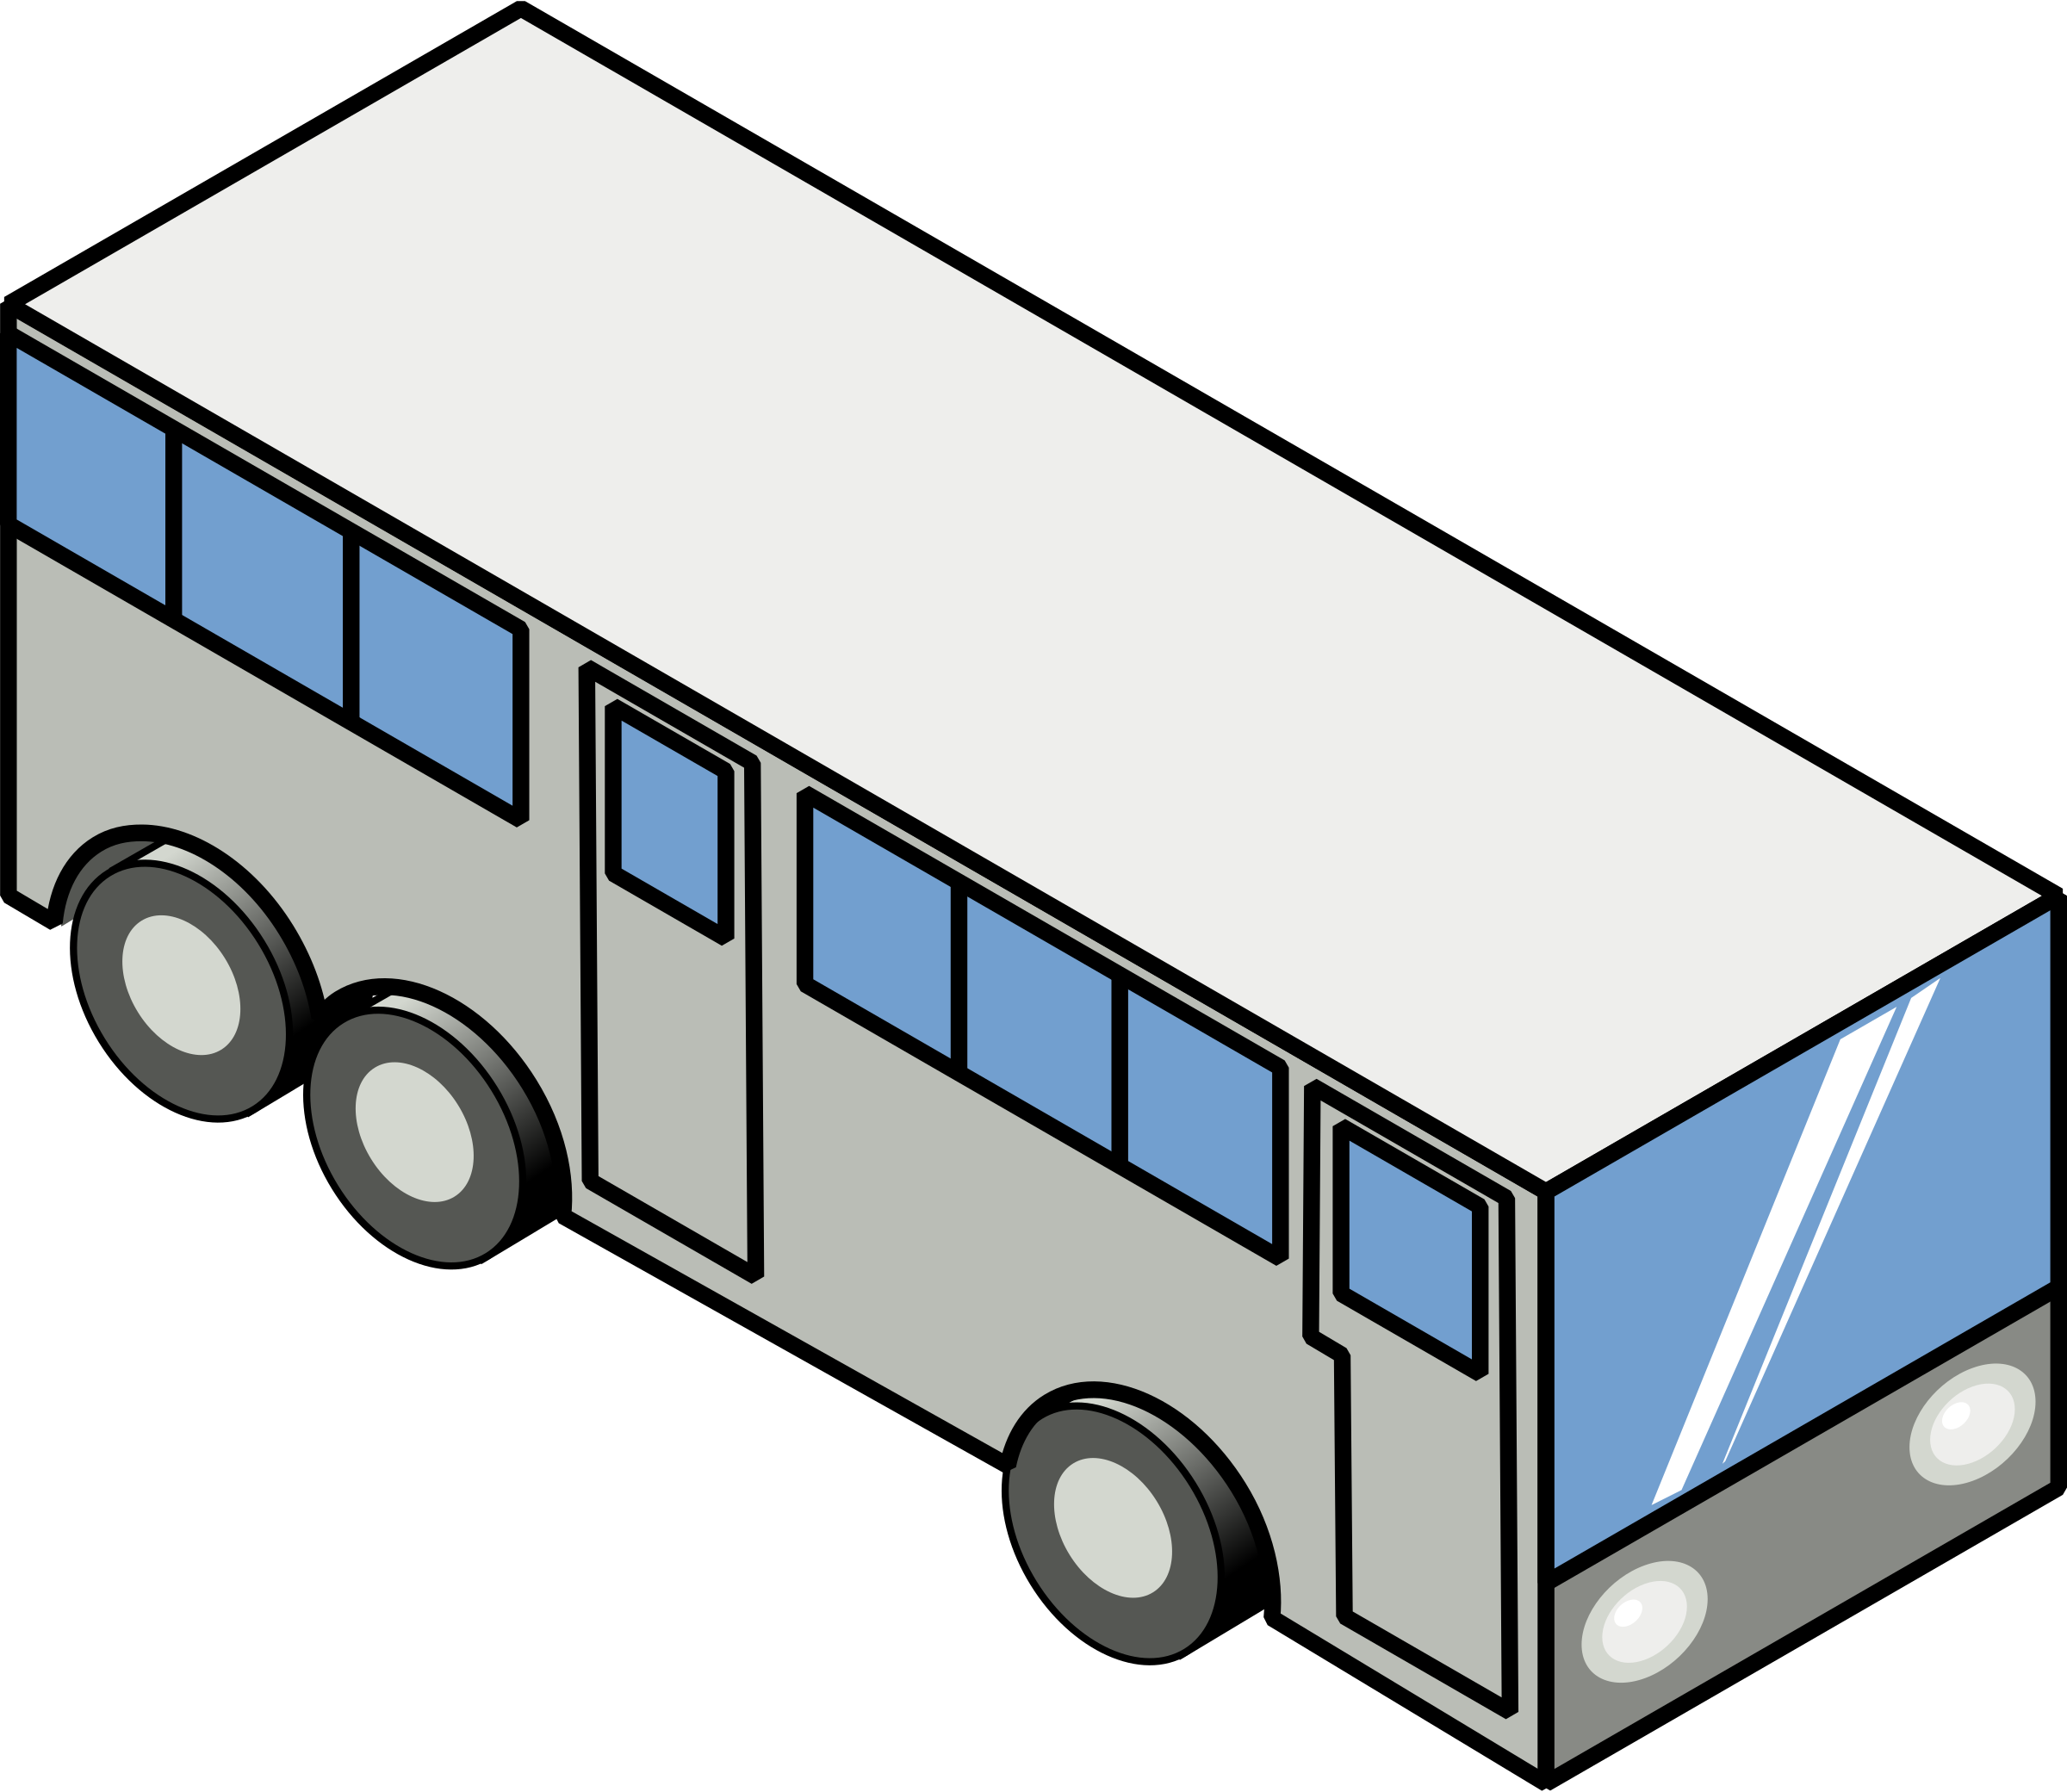 Bus (isometric icon) by rg1024